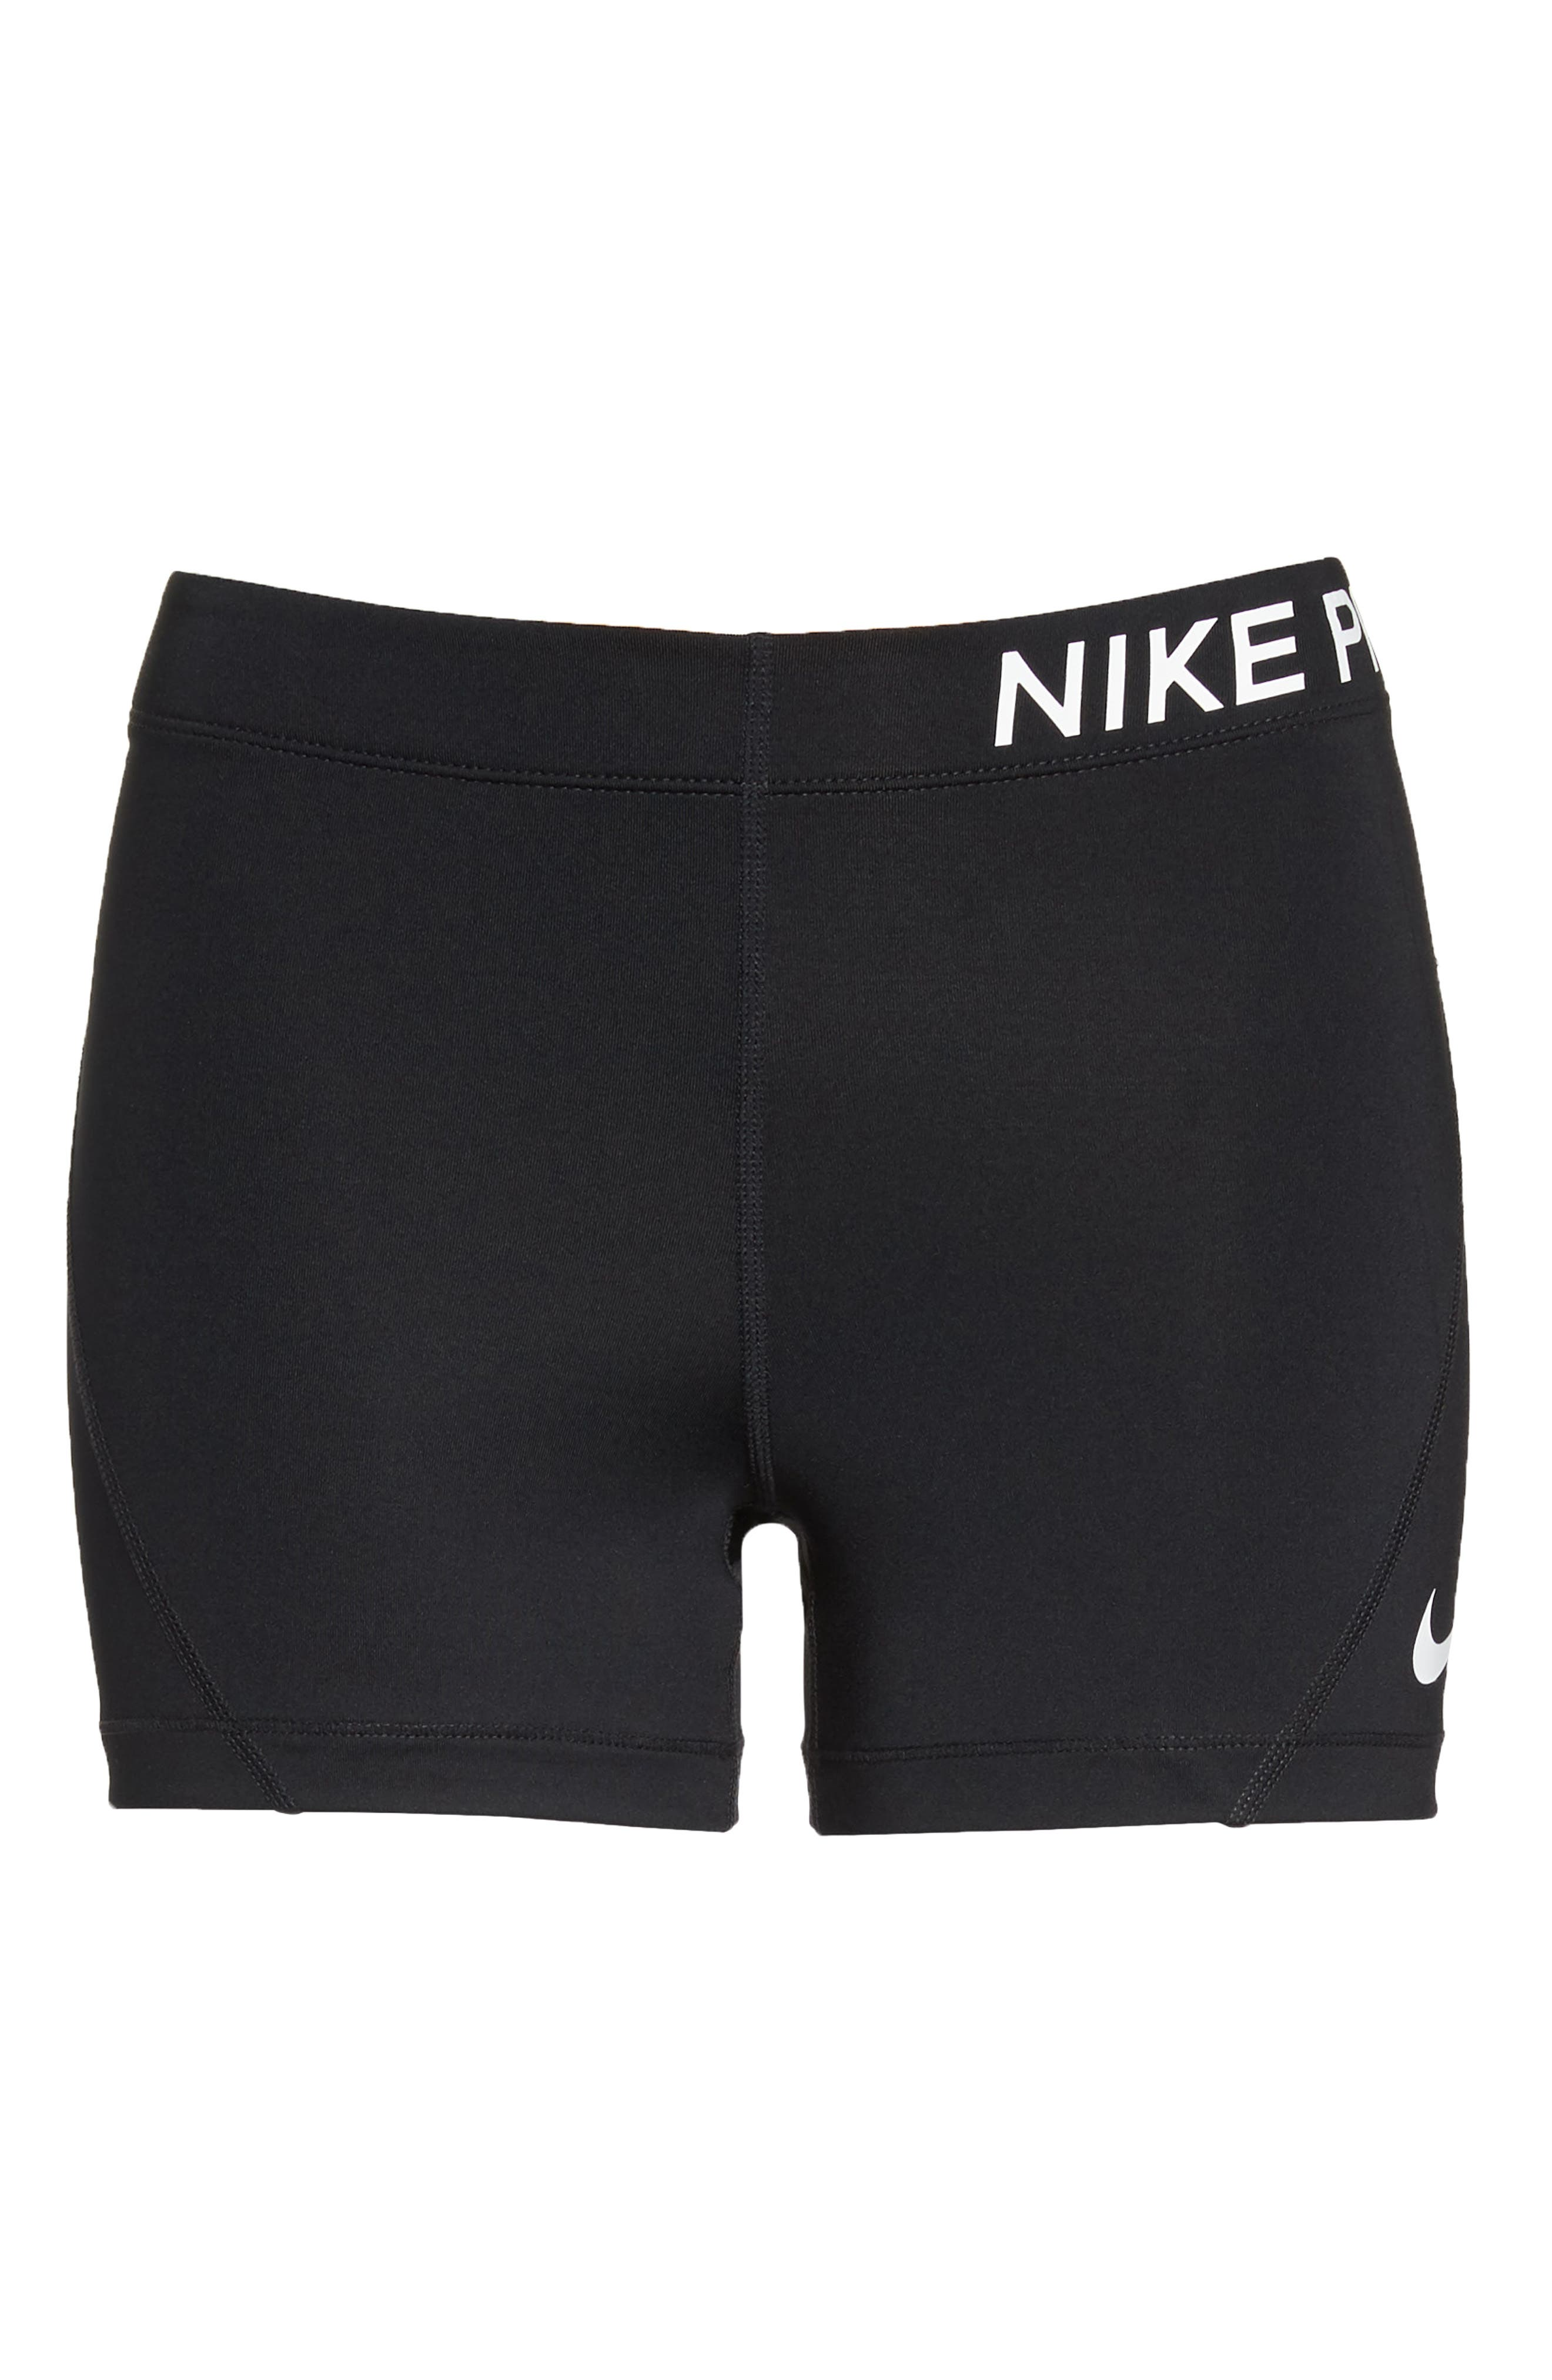 Pro Short Shorts,                             Alternate thumbnail 7, color,                             BLACK/ WHITE